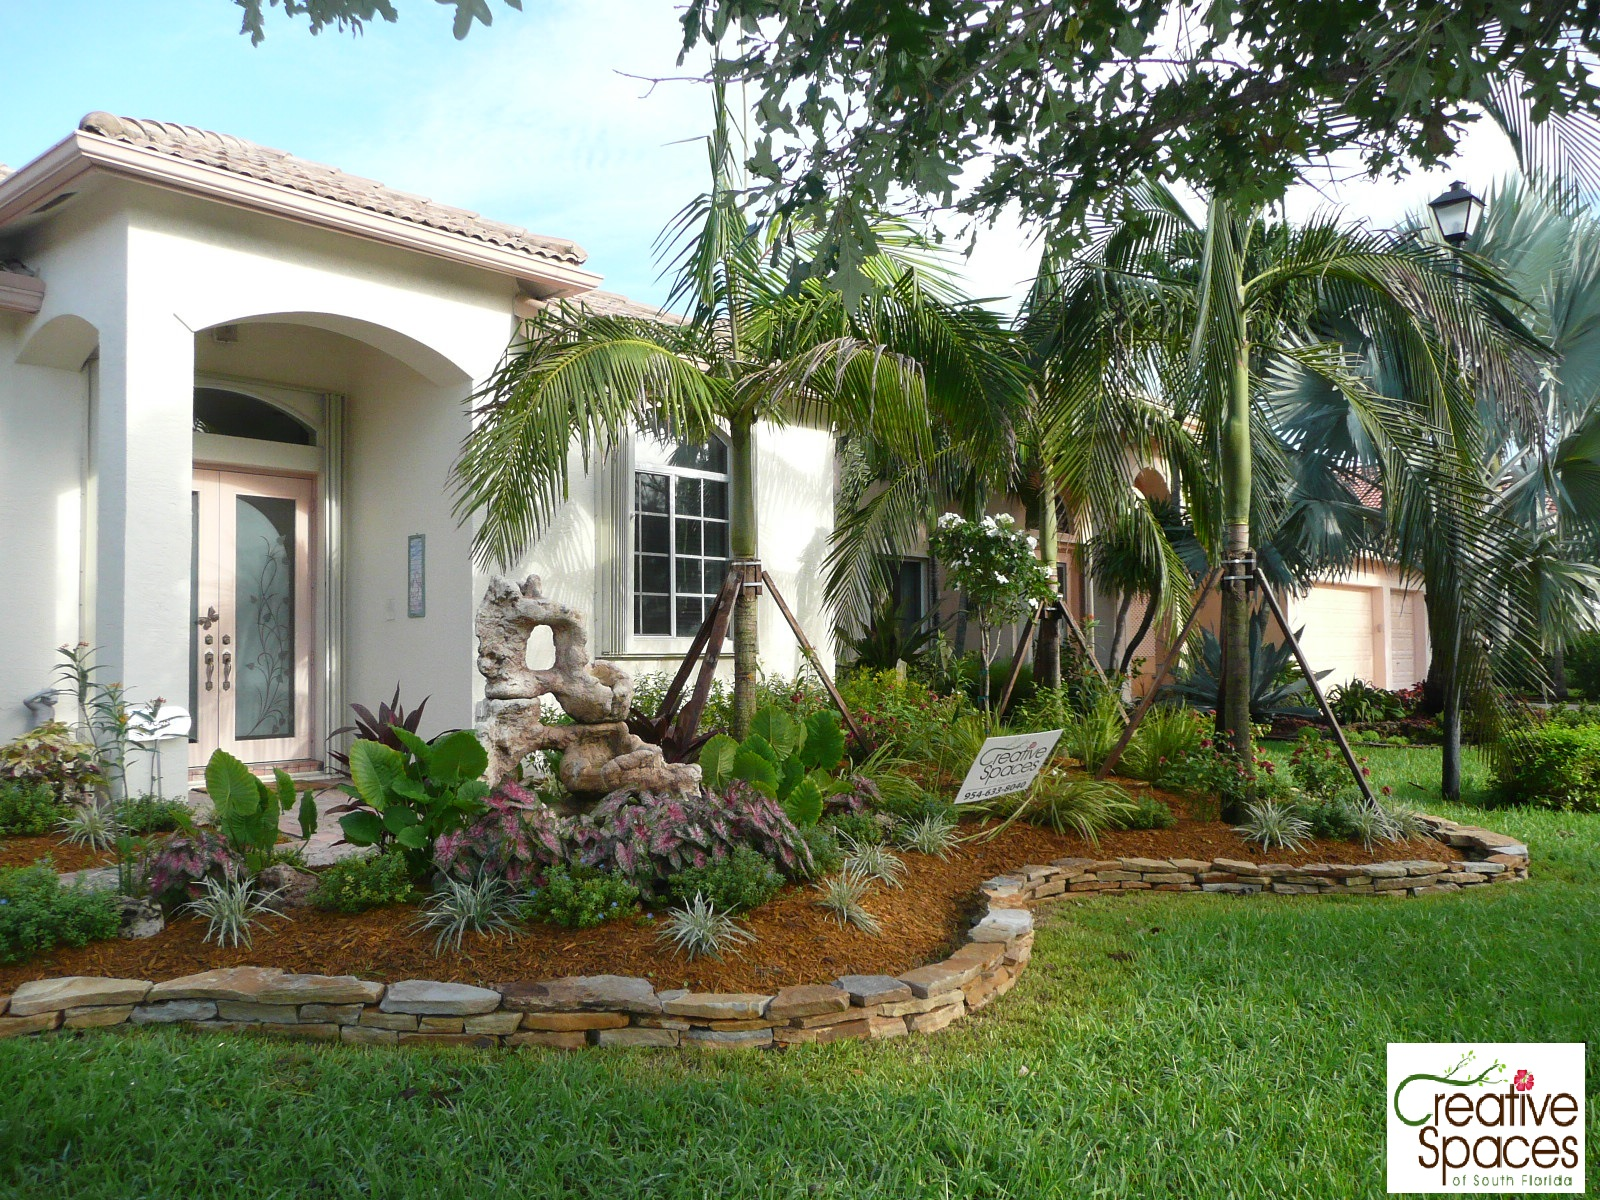 Landscaping landscaping ideas front yard south florida for Florida landscaping ideas for front yard